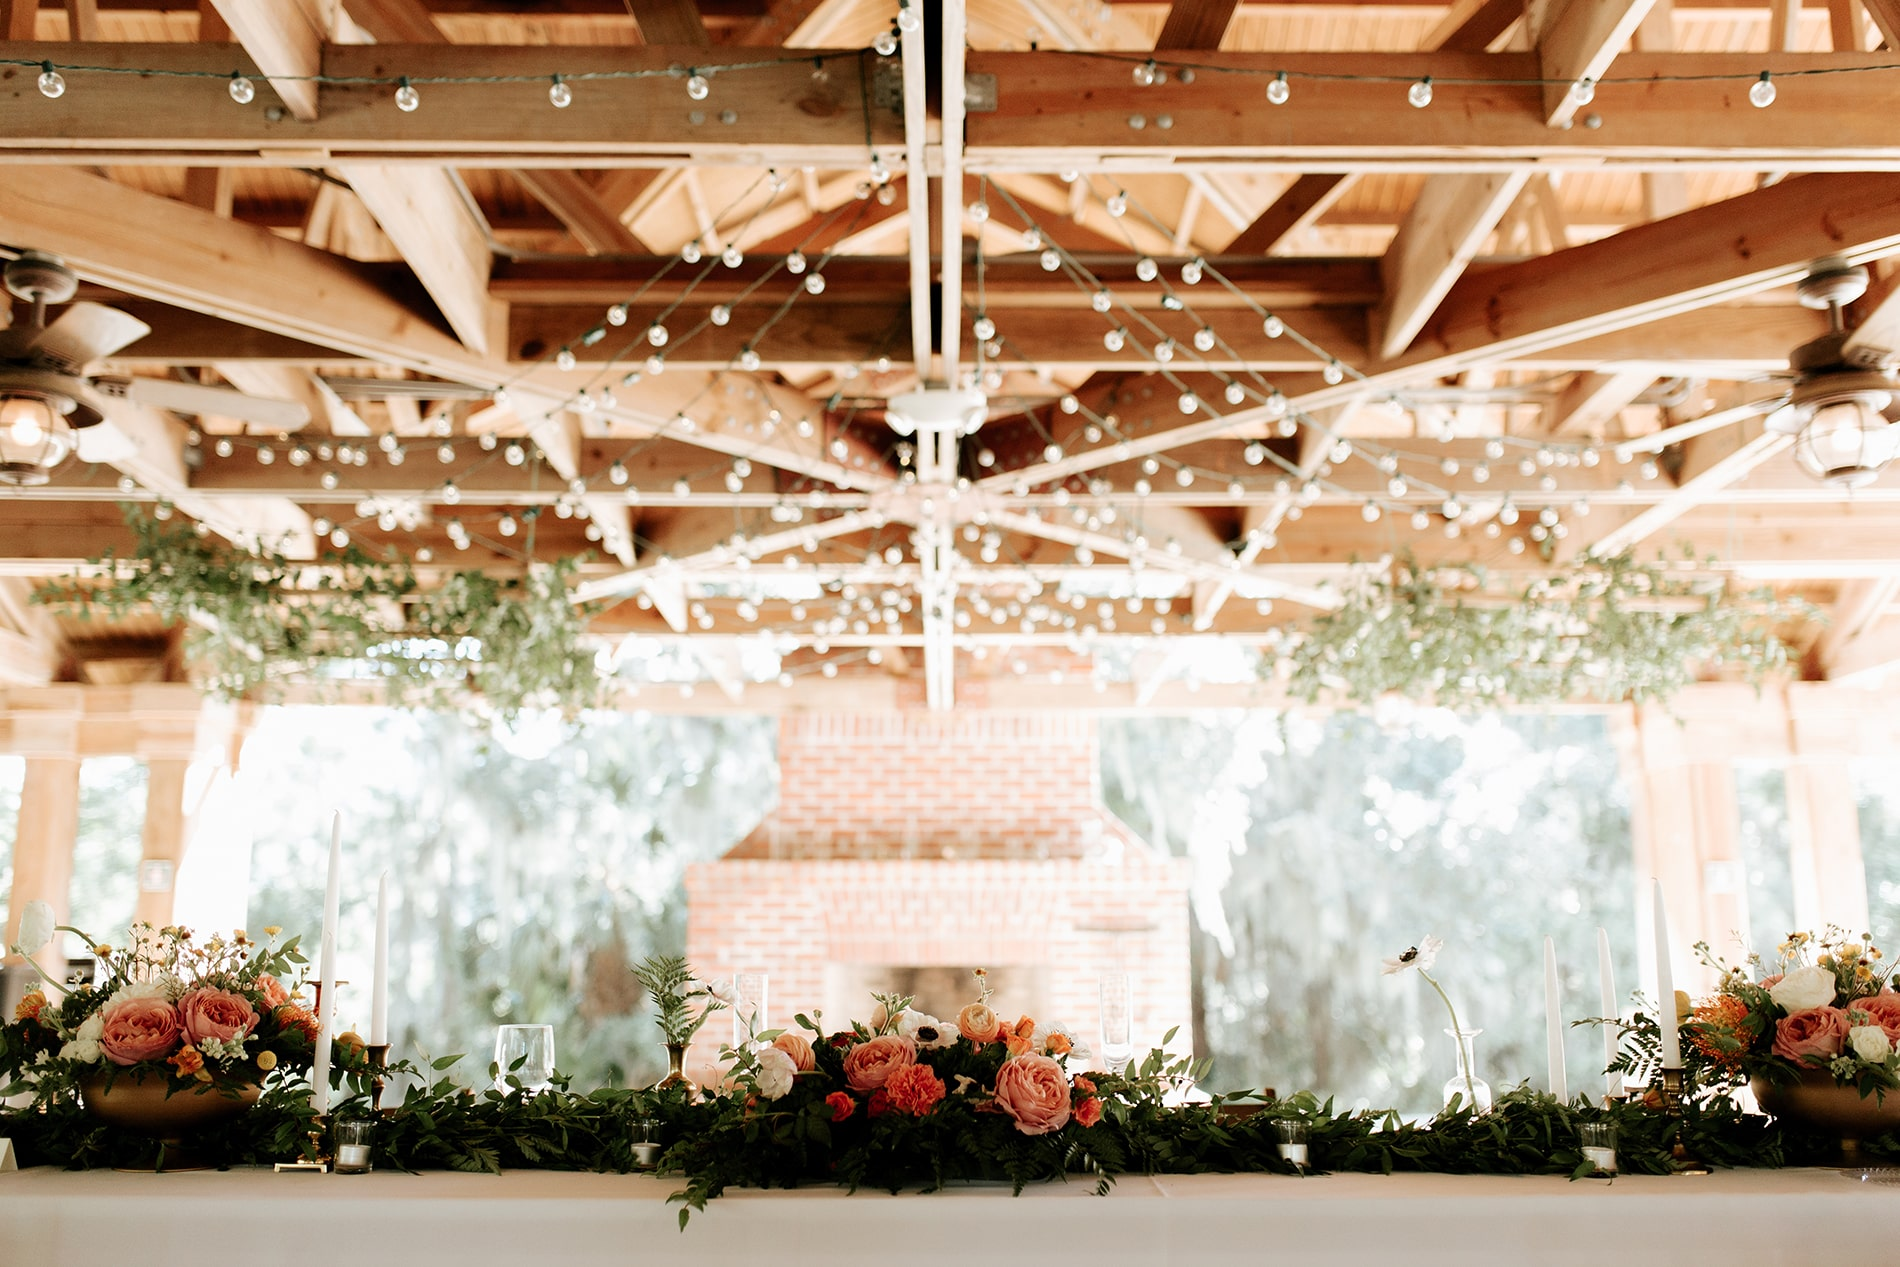 Decorated venue at the Mary Grace and Judd Kennedy wedding.